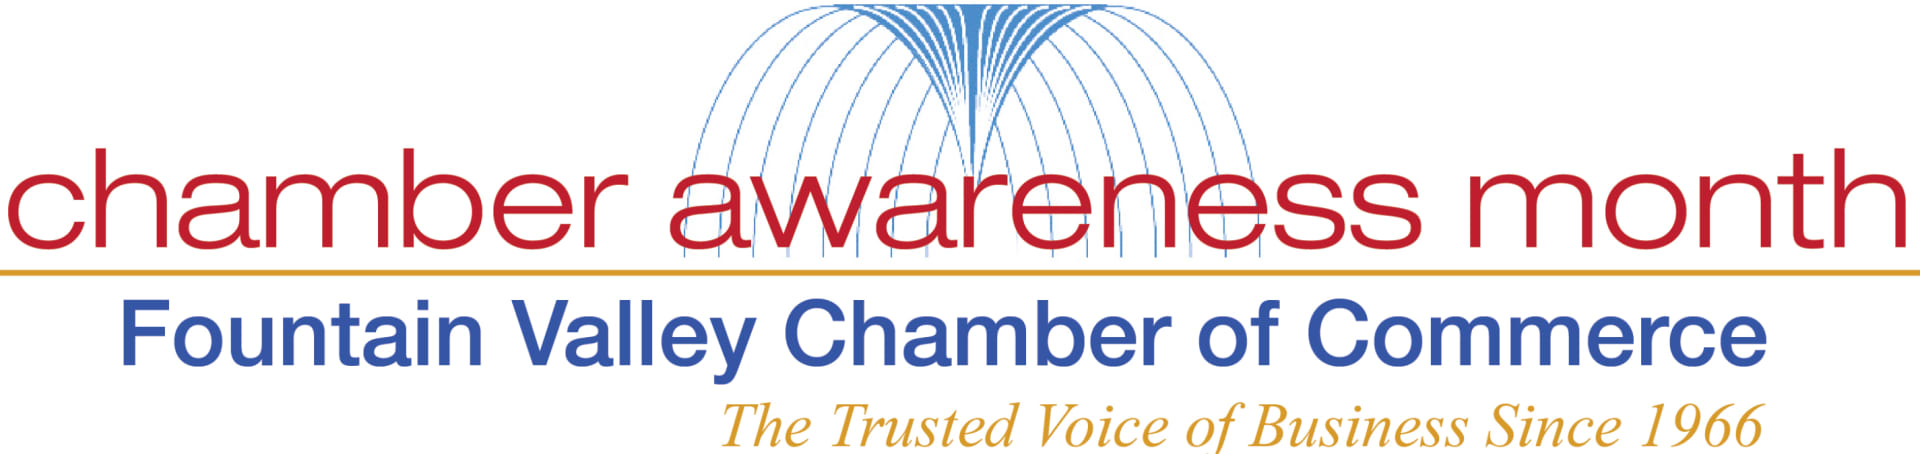 Chamber awareness month